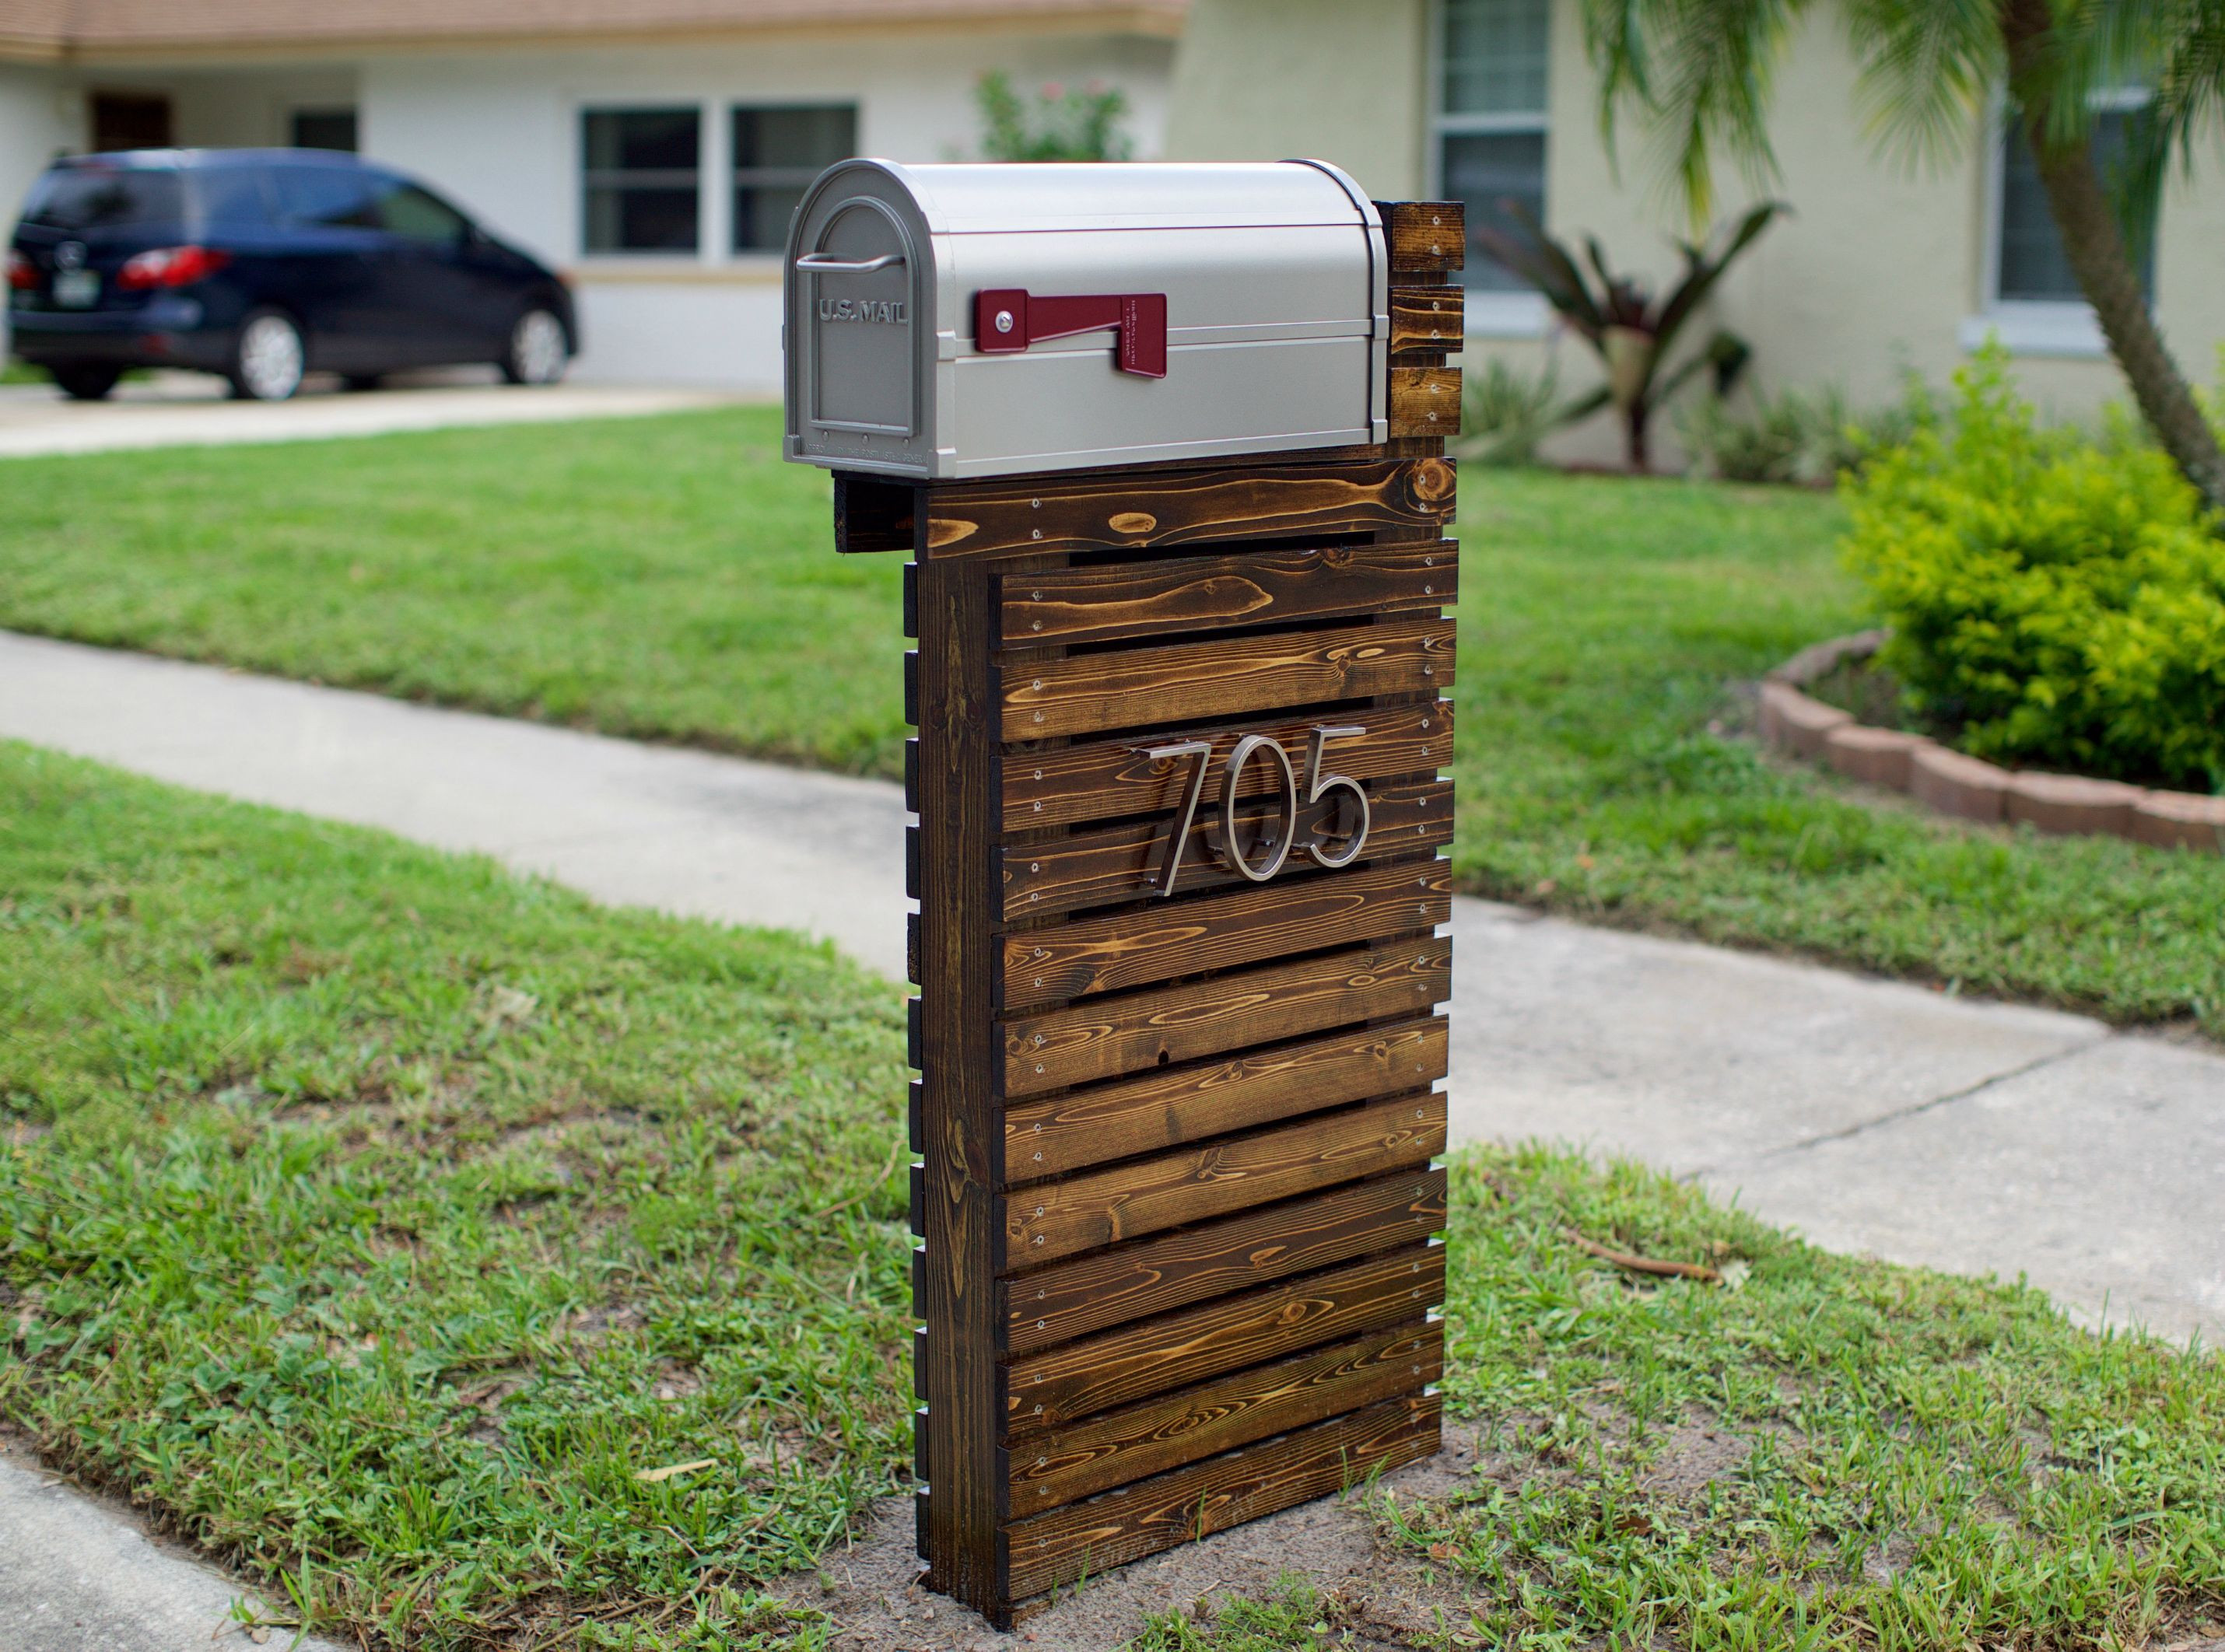 Best ideas about DIY Mailbox Post Ideas . Save or Pin Best 25 Diy mailbox ideas on Pinterest Now.